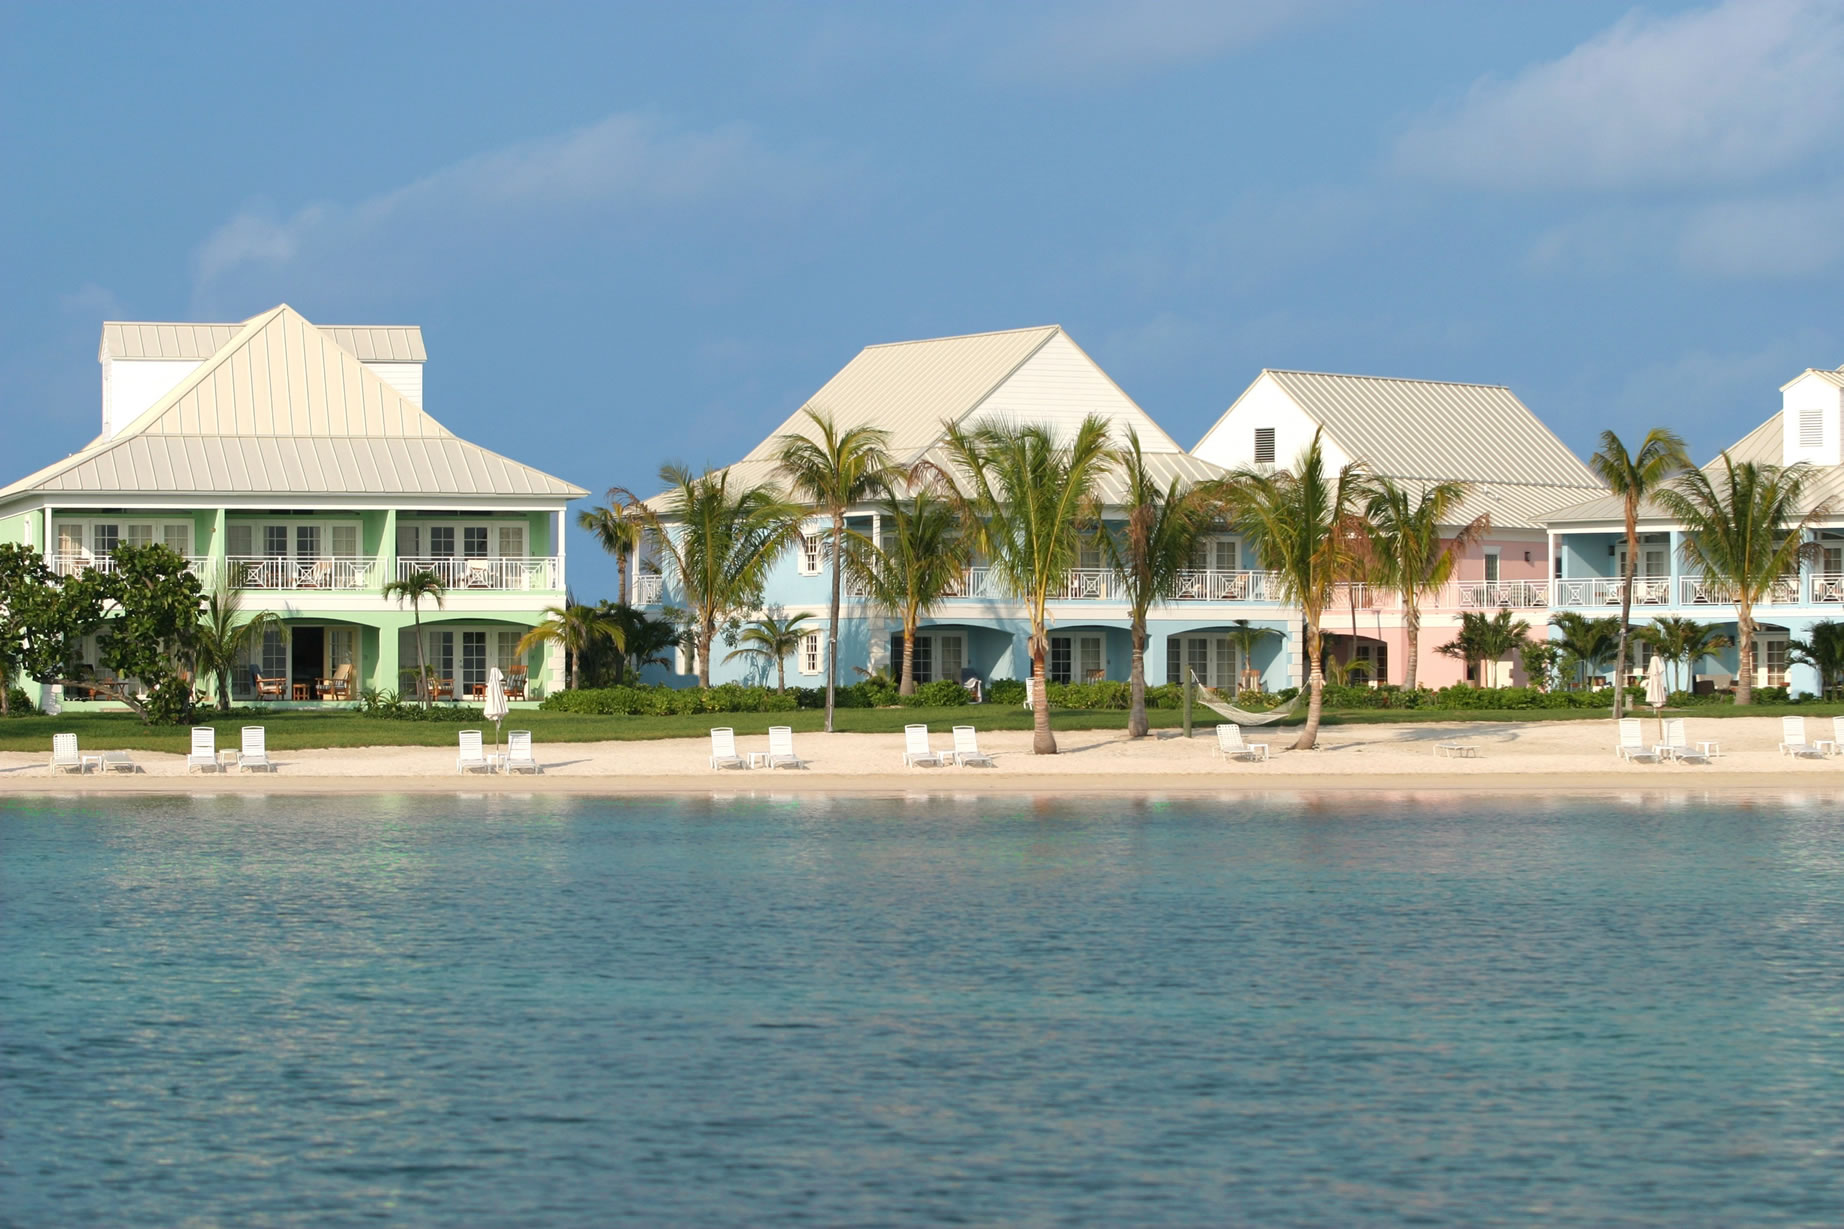 Grand Bahama Island - Old Bahama Bay